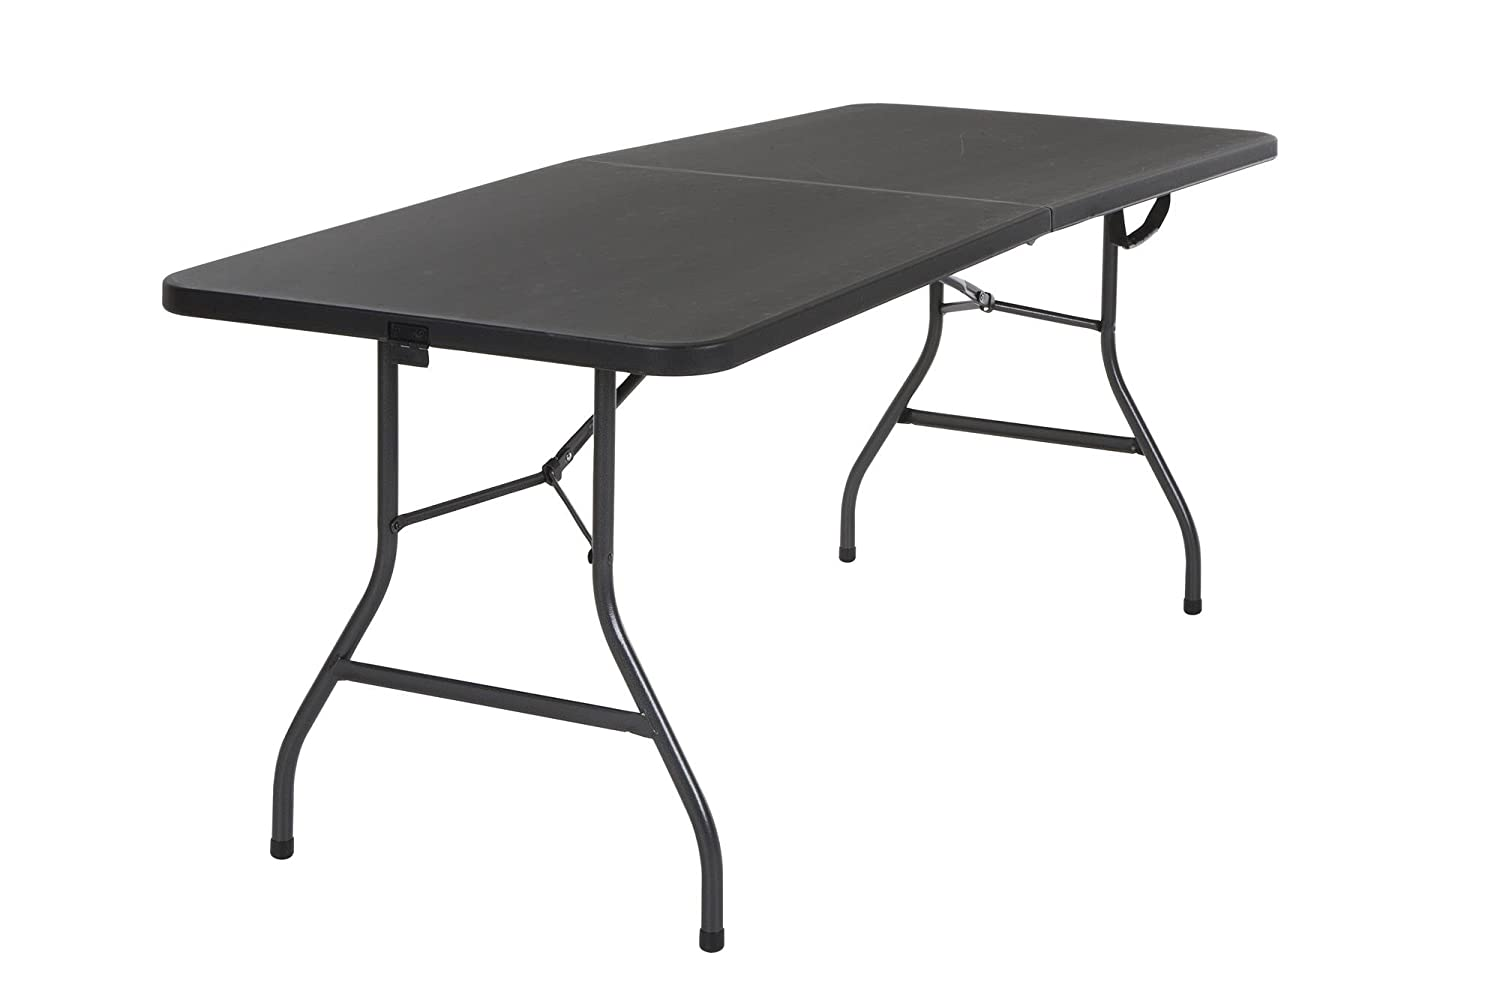 Cosco Products Centerfold Folding Table, 6-Feet, Black Dorel Industries 14678BLK1